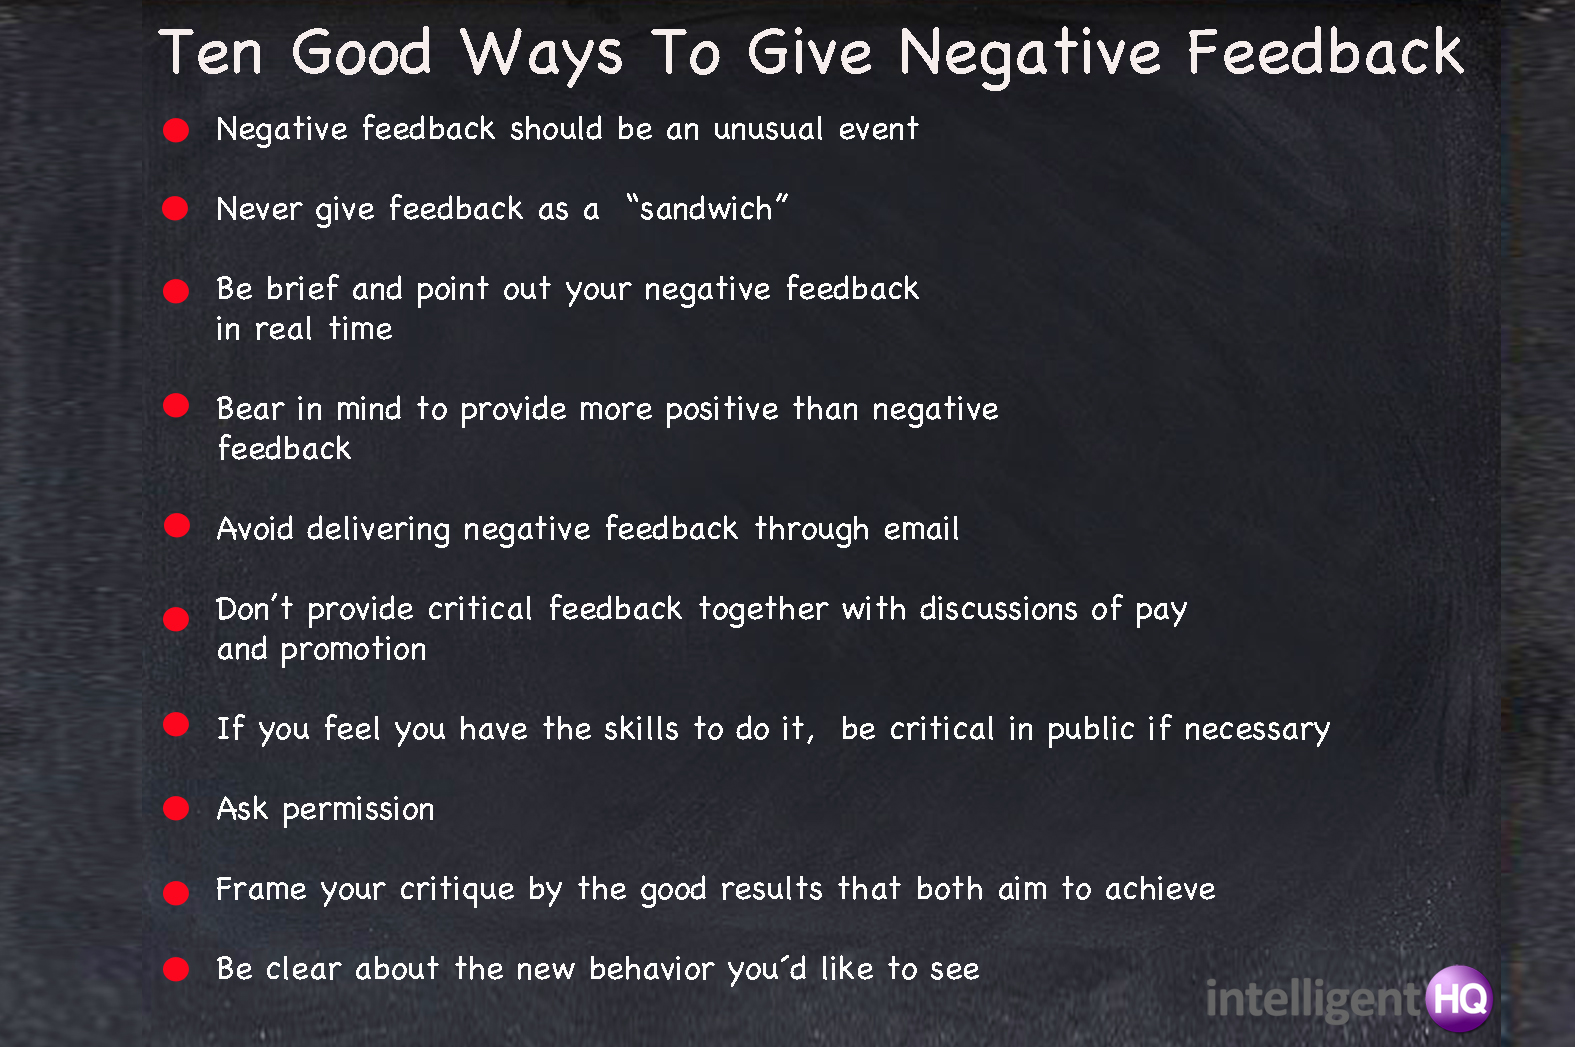 ten ways to provide negative feedback in a constructive way